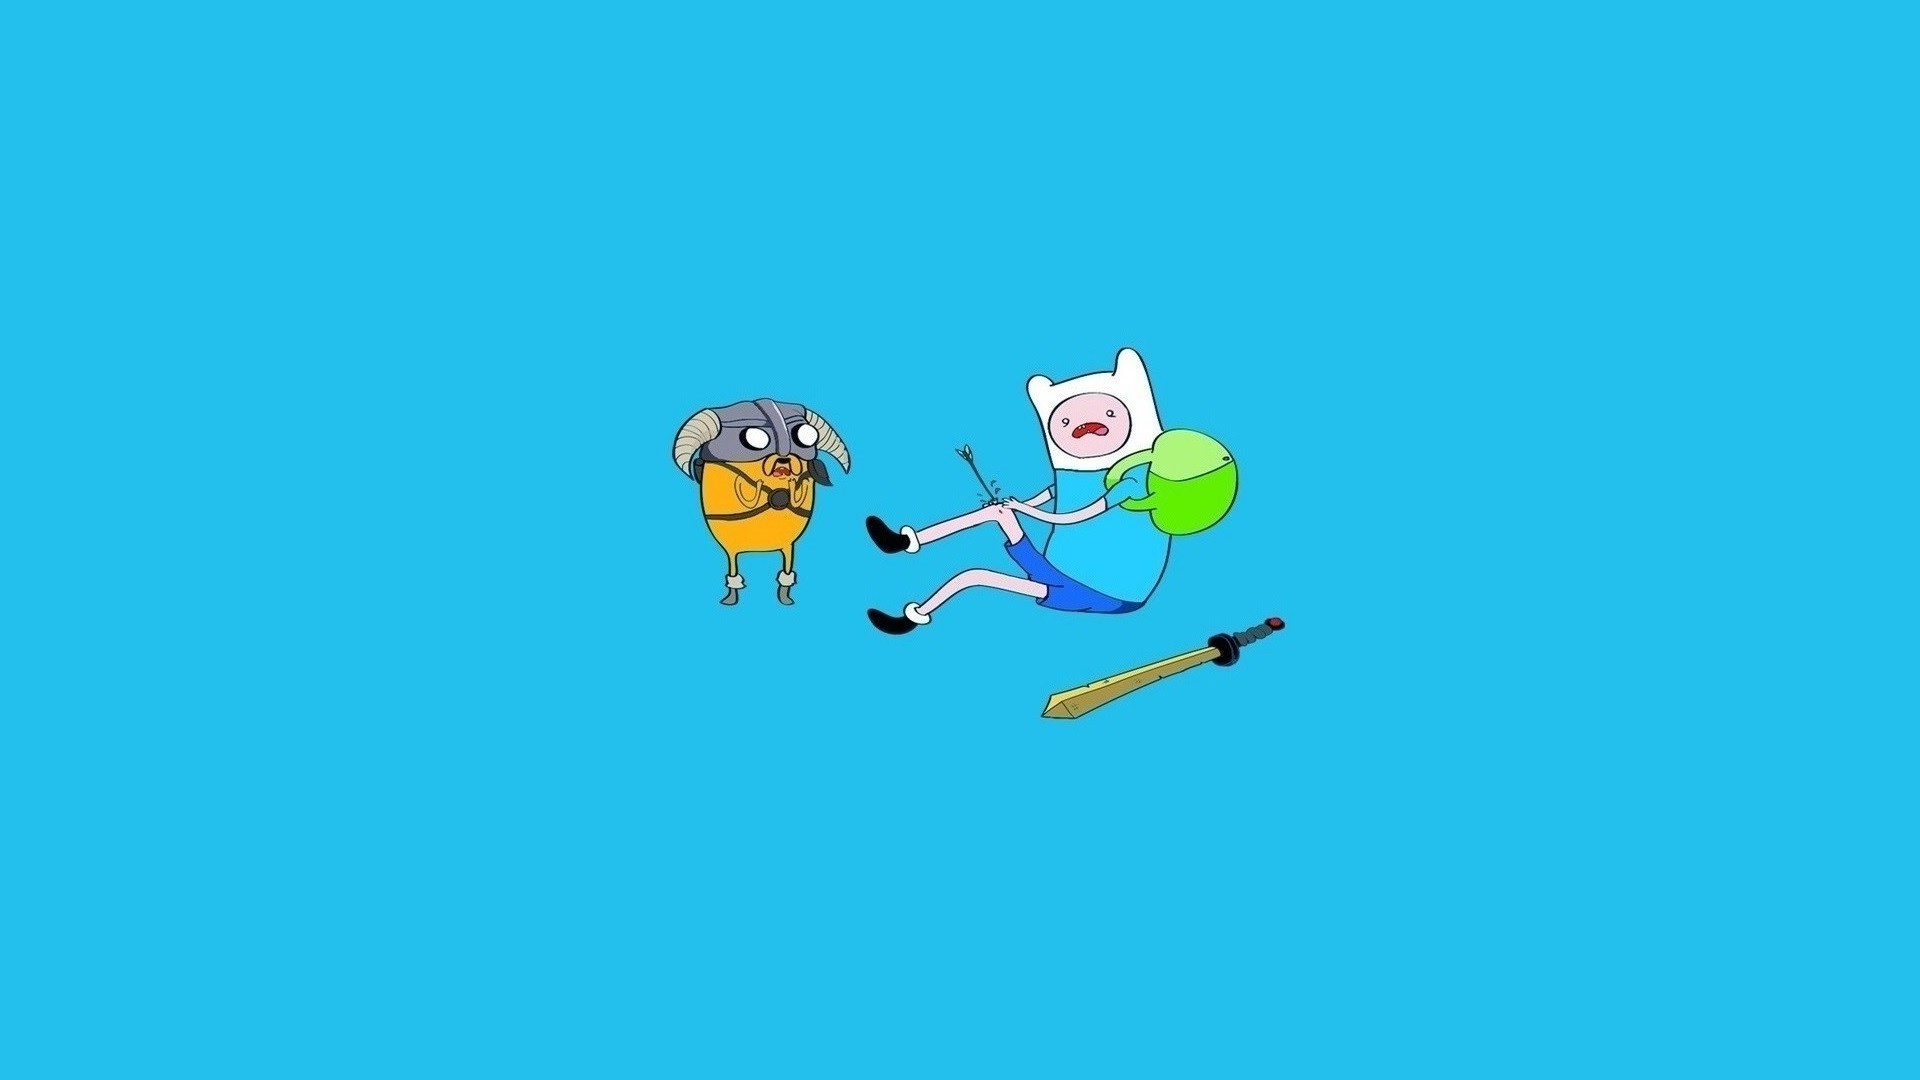 1920x1080  TV Show - Adventure Time Finn the Human Jake the Dog Beemo  Wallpaper